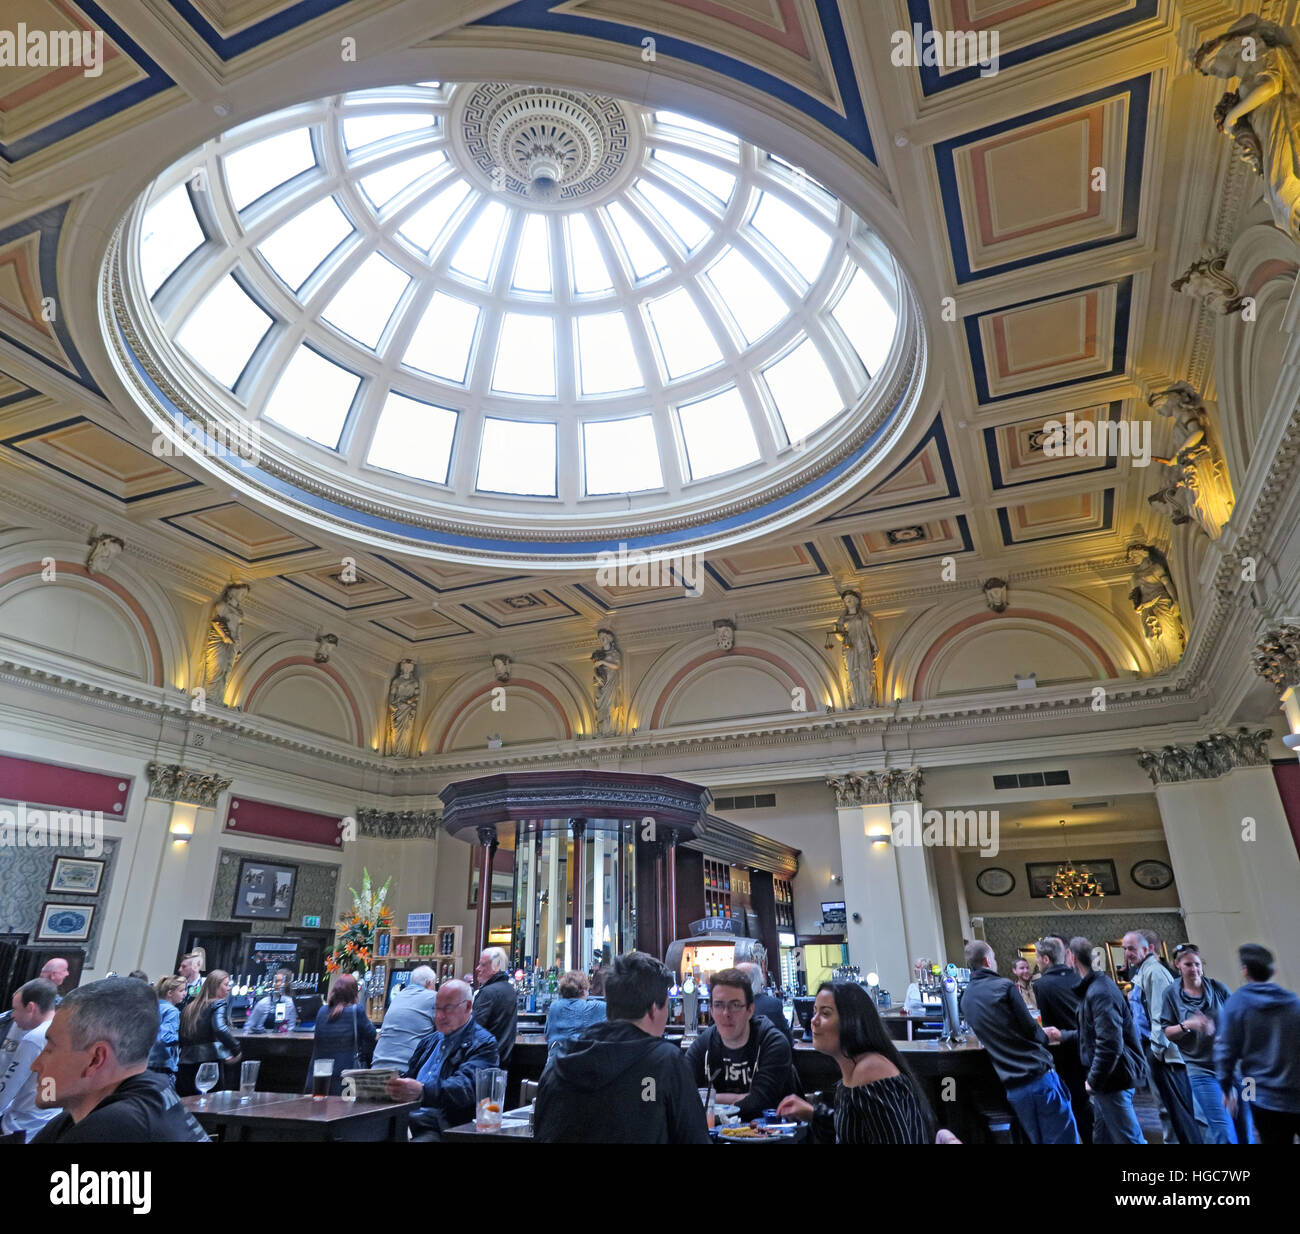 GoTonySmith,@HotpixUK,Tony,Smith,UK,GB,Great,Britain,United,Kingdom,Scotish,Scottish,Scotch,British,Alba,problem,with,problem with,Stock Images,Tony Smith,United Kingdom,Great Britain,British Isles,centre,city centre,urban,Counting House,Pub,Wetherspoon,ceiling,window,stained glass,G1,G1 2DH,Bank of Scotland,Ruchead,architect,building